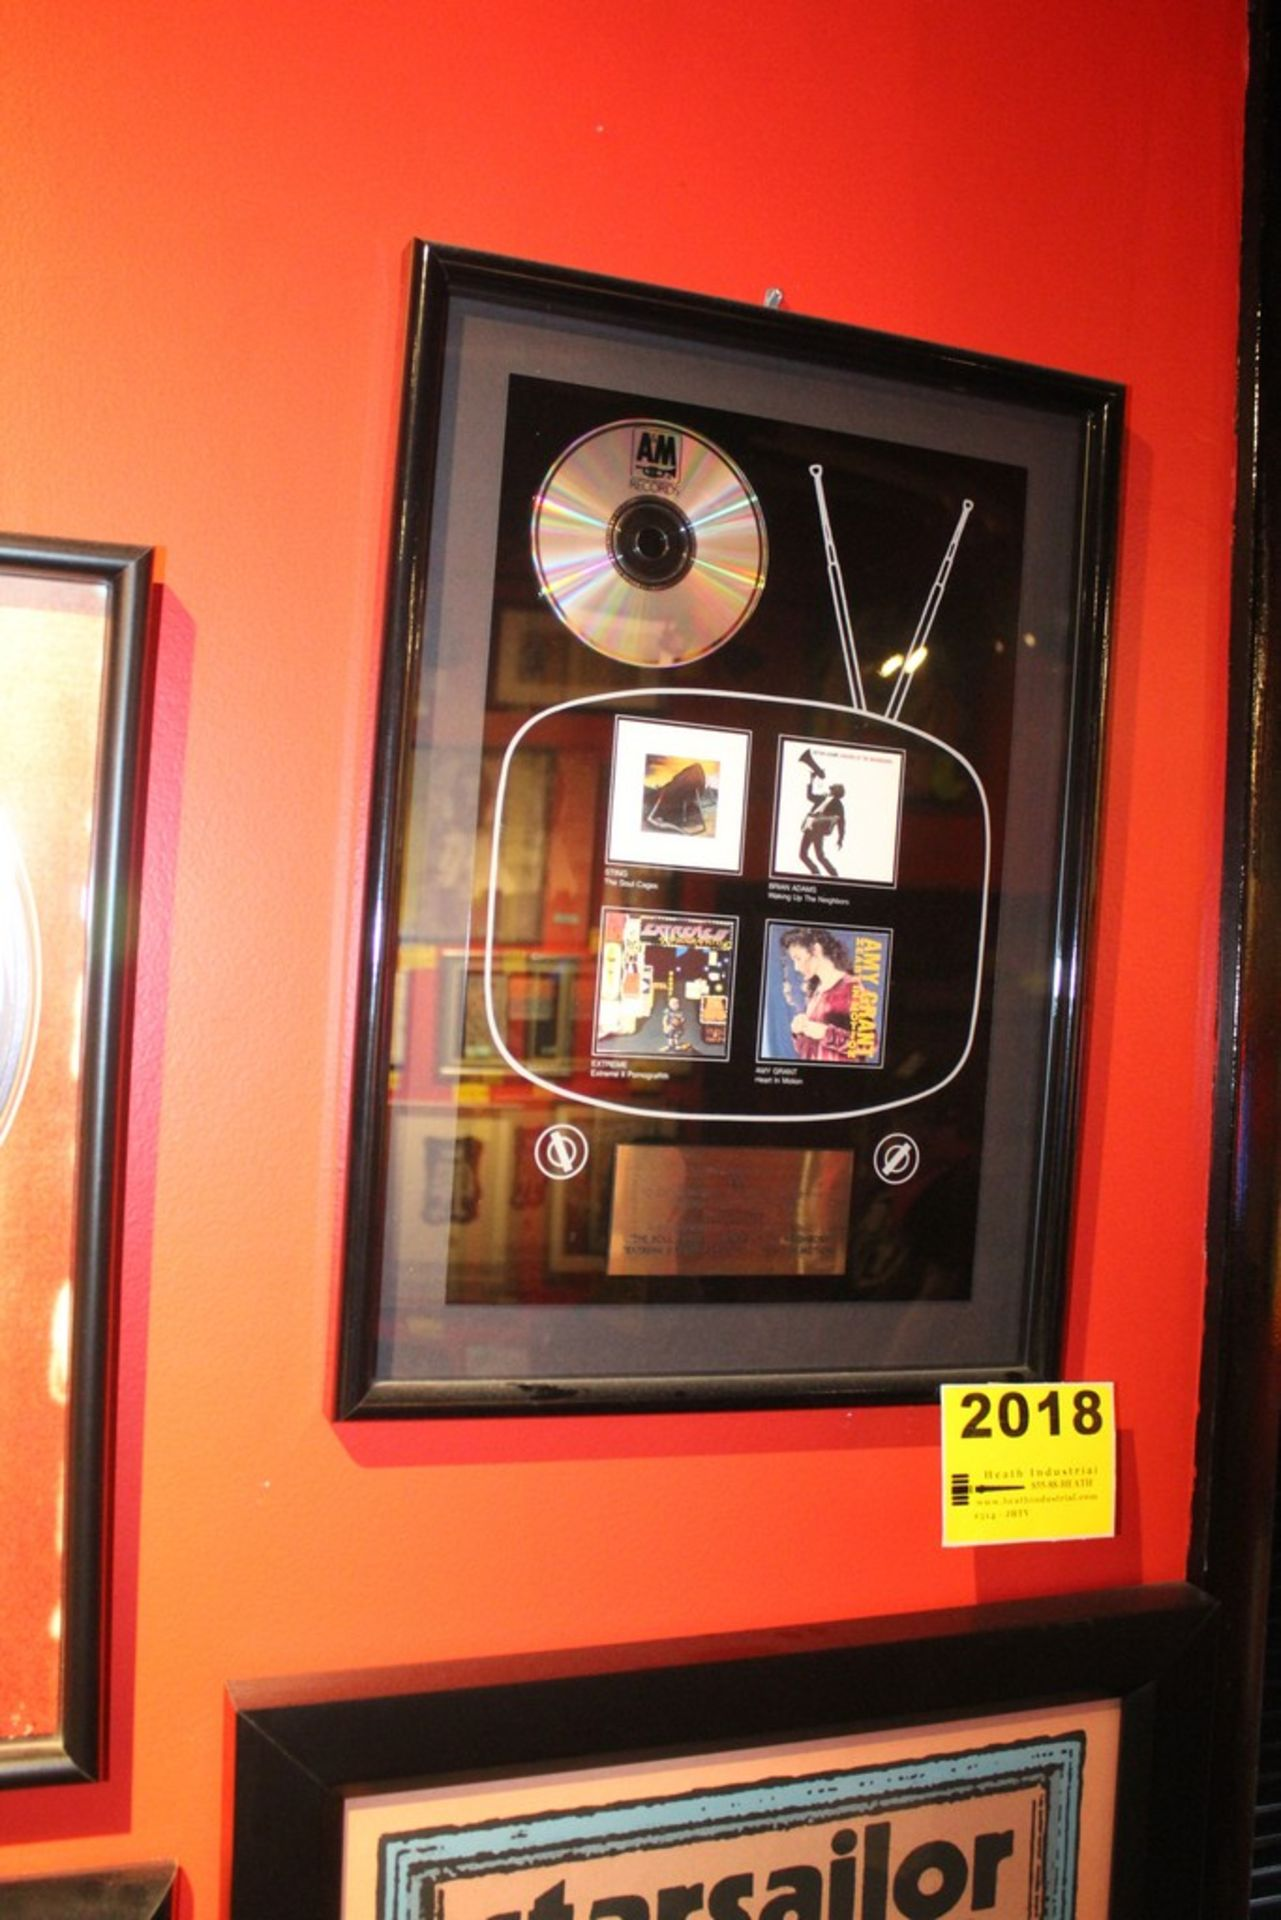 Lot 2018 - A&M Records Platinum Commemerative Display for Bryan Adams, Extreme, Amy Grant and Sting